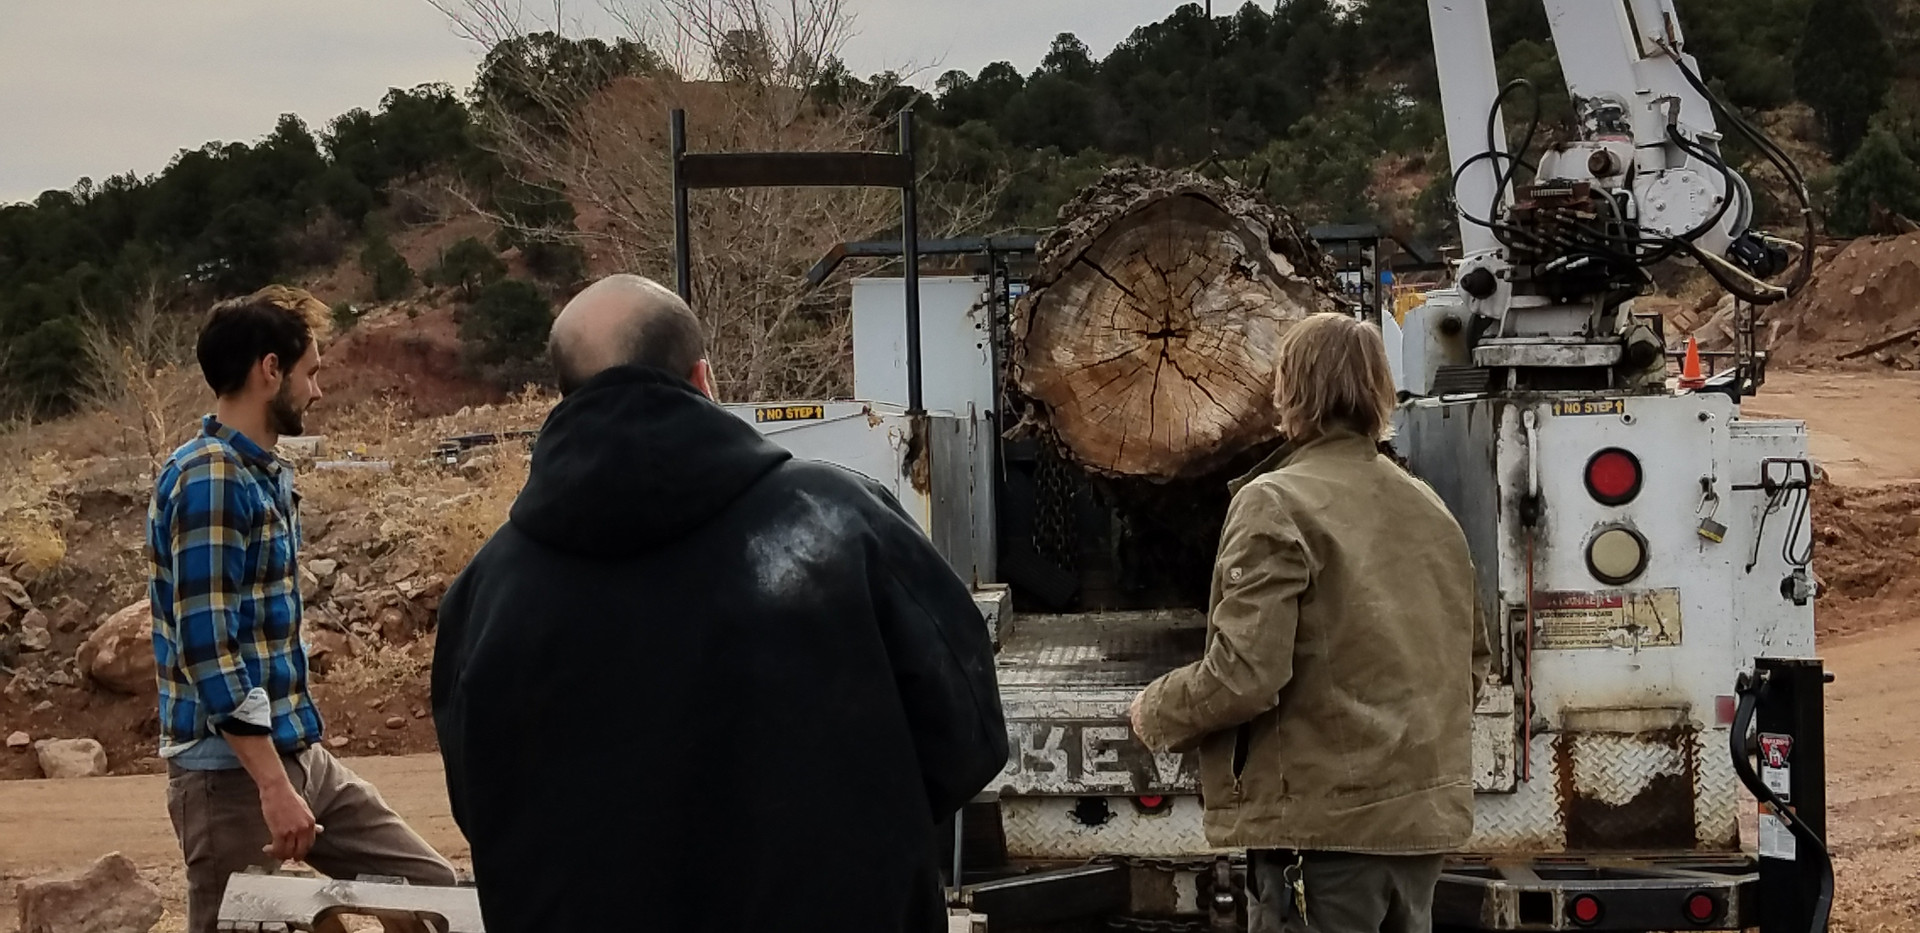 The team moving the stump to be carved.